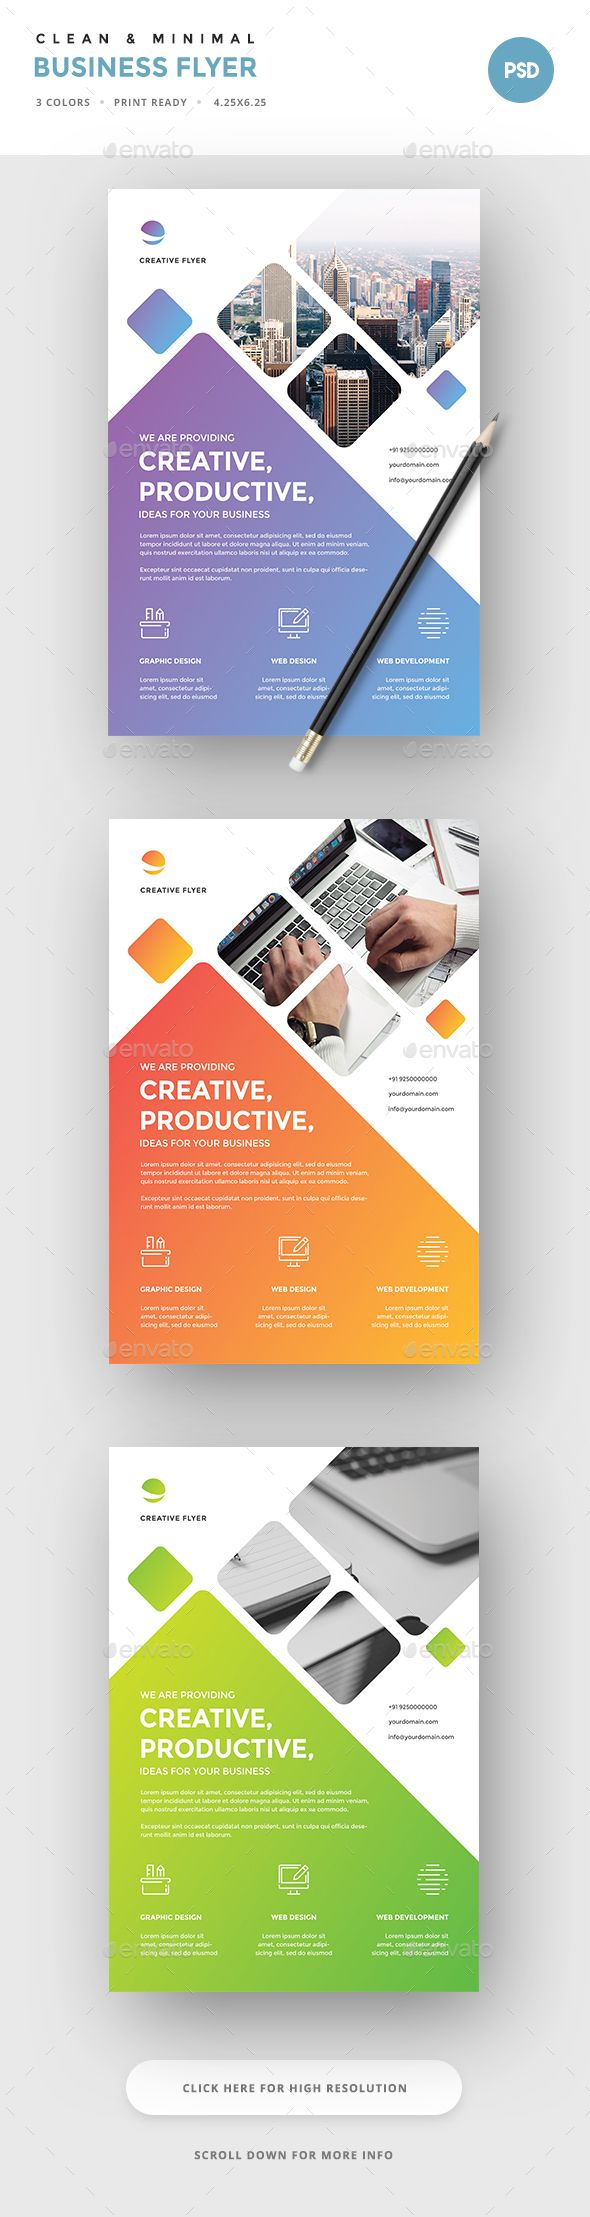 25 beautiful flyer design ideas on pinterest graphic design corporate flyer template psd pronofoot35fo Image collections